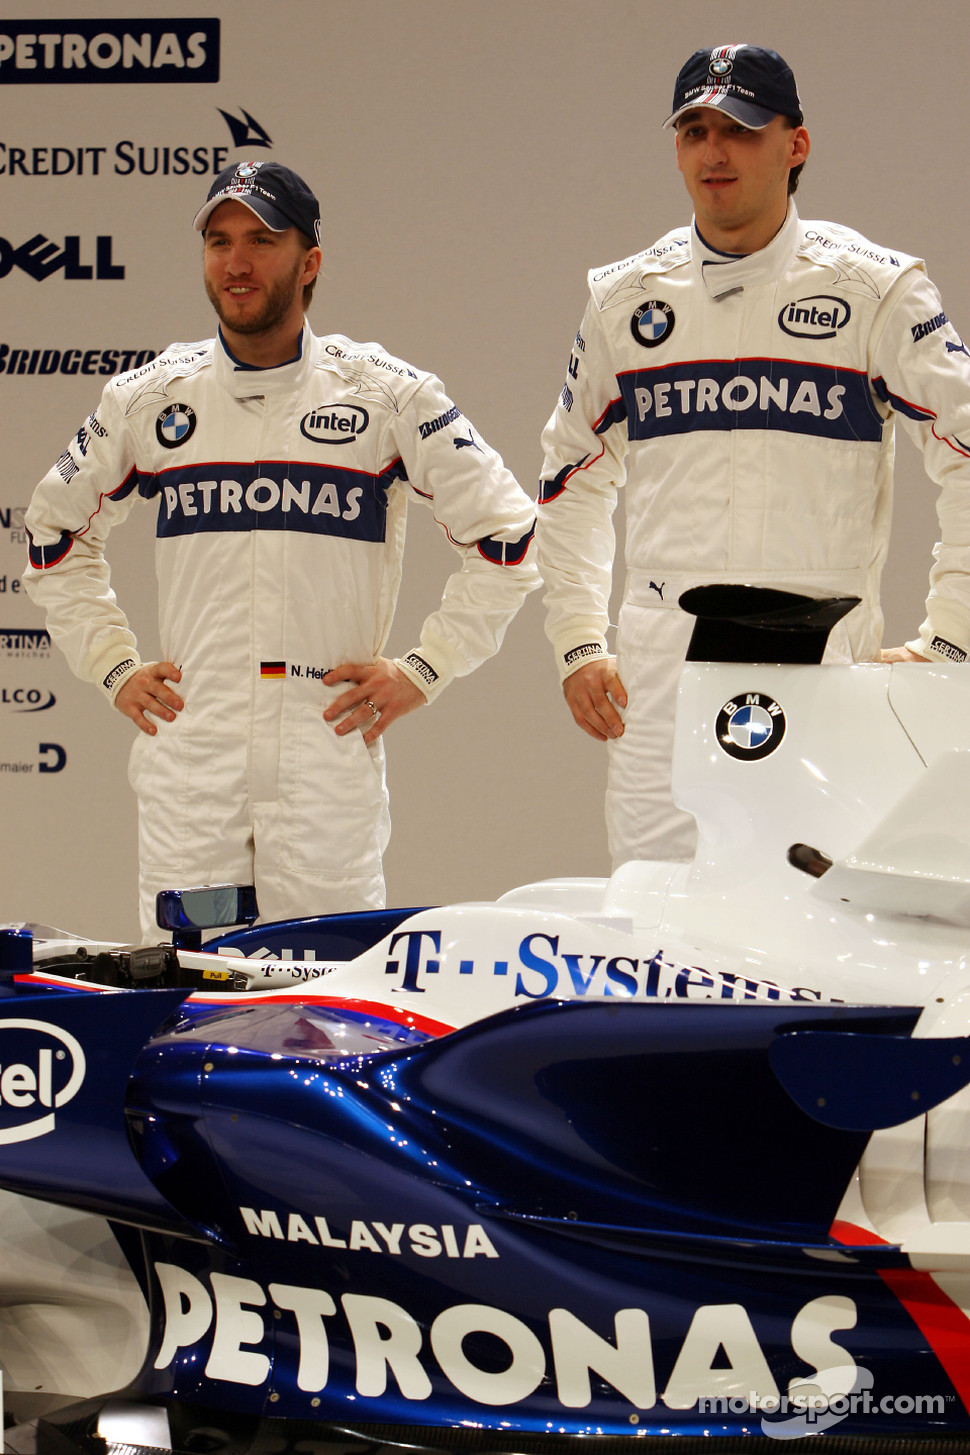 Robert Kubica and Nick Heidfeld pose with the new BMW Sauber F1.08